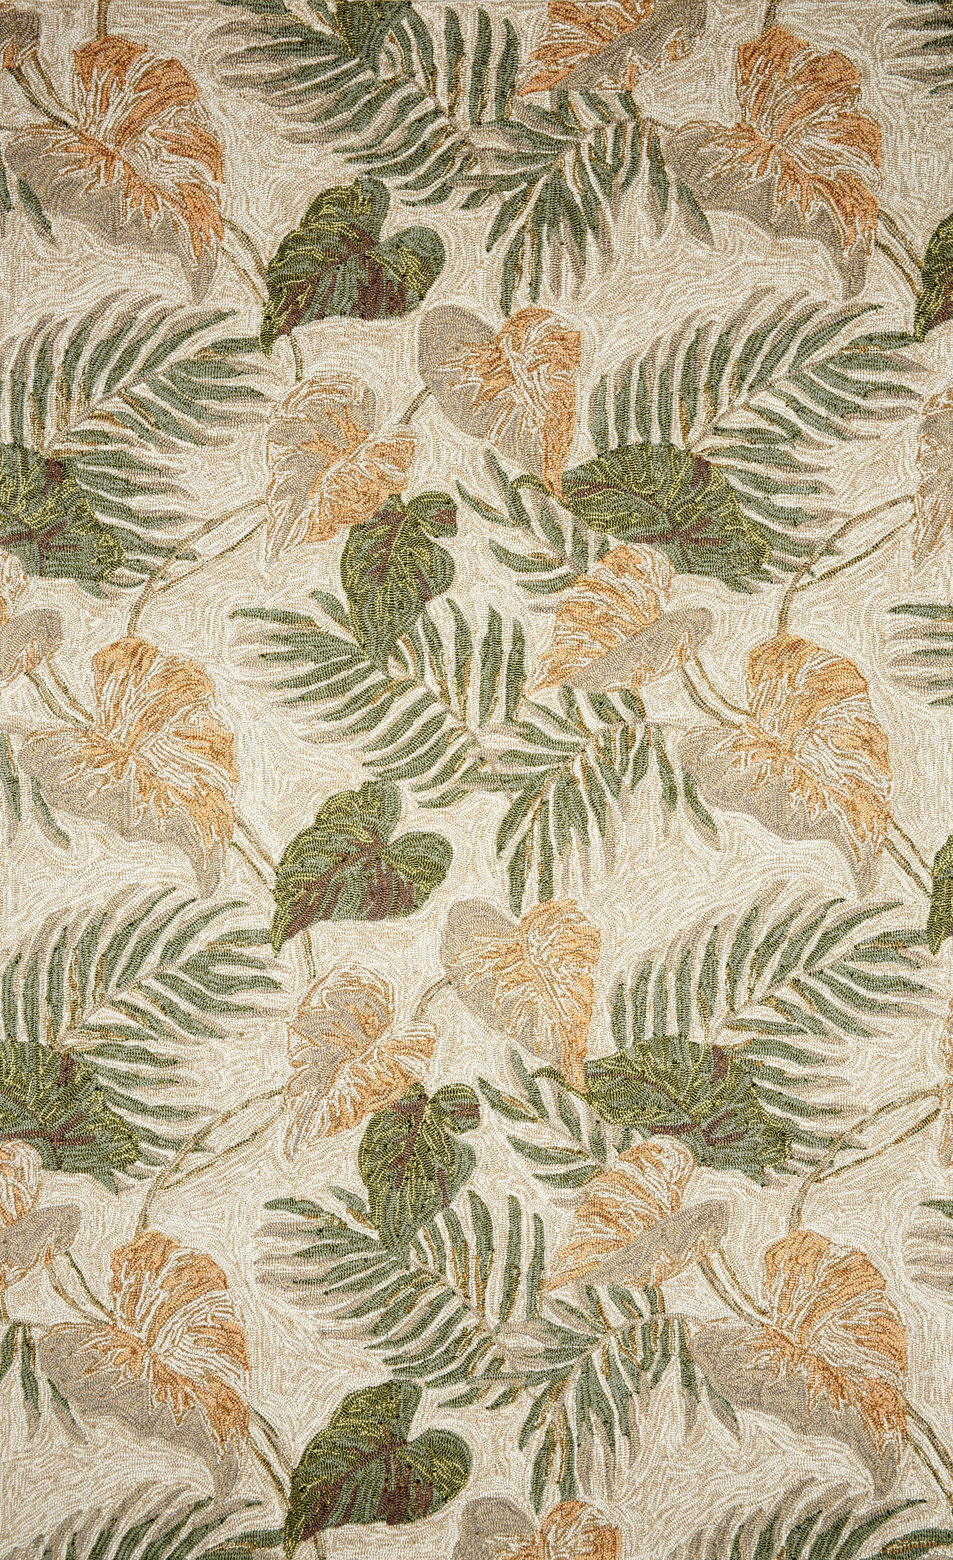 Trans Ocean Ravella Tropical Leaf 206612 Neutral Rug Studio